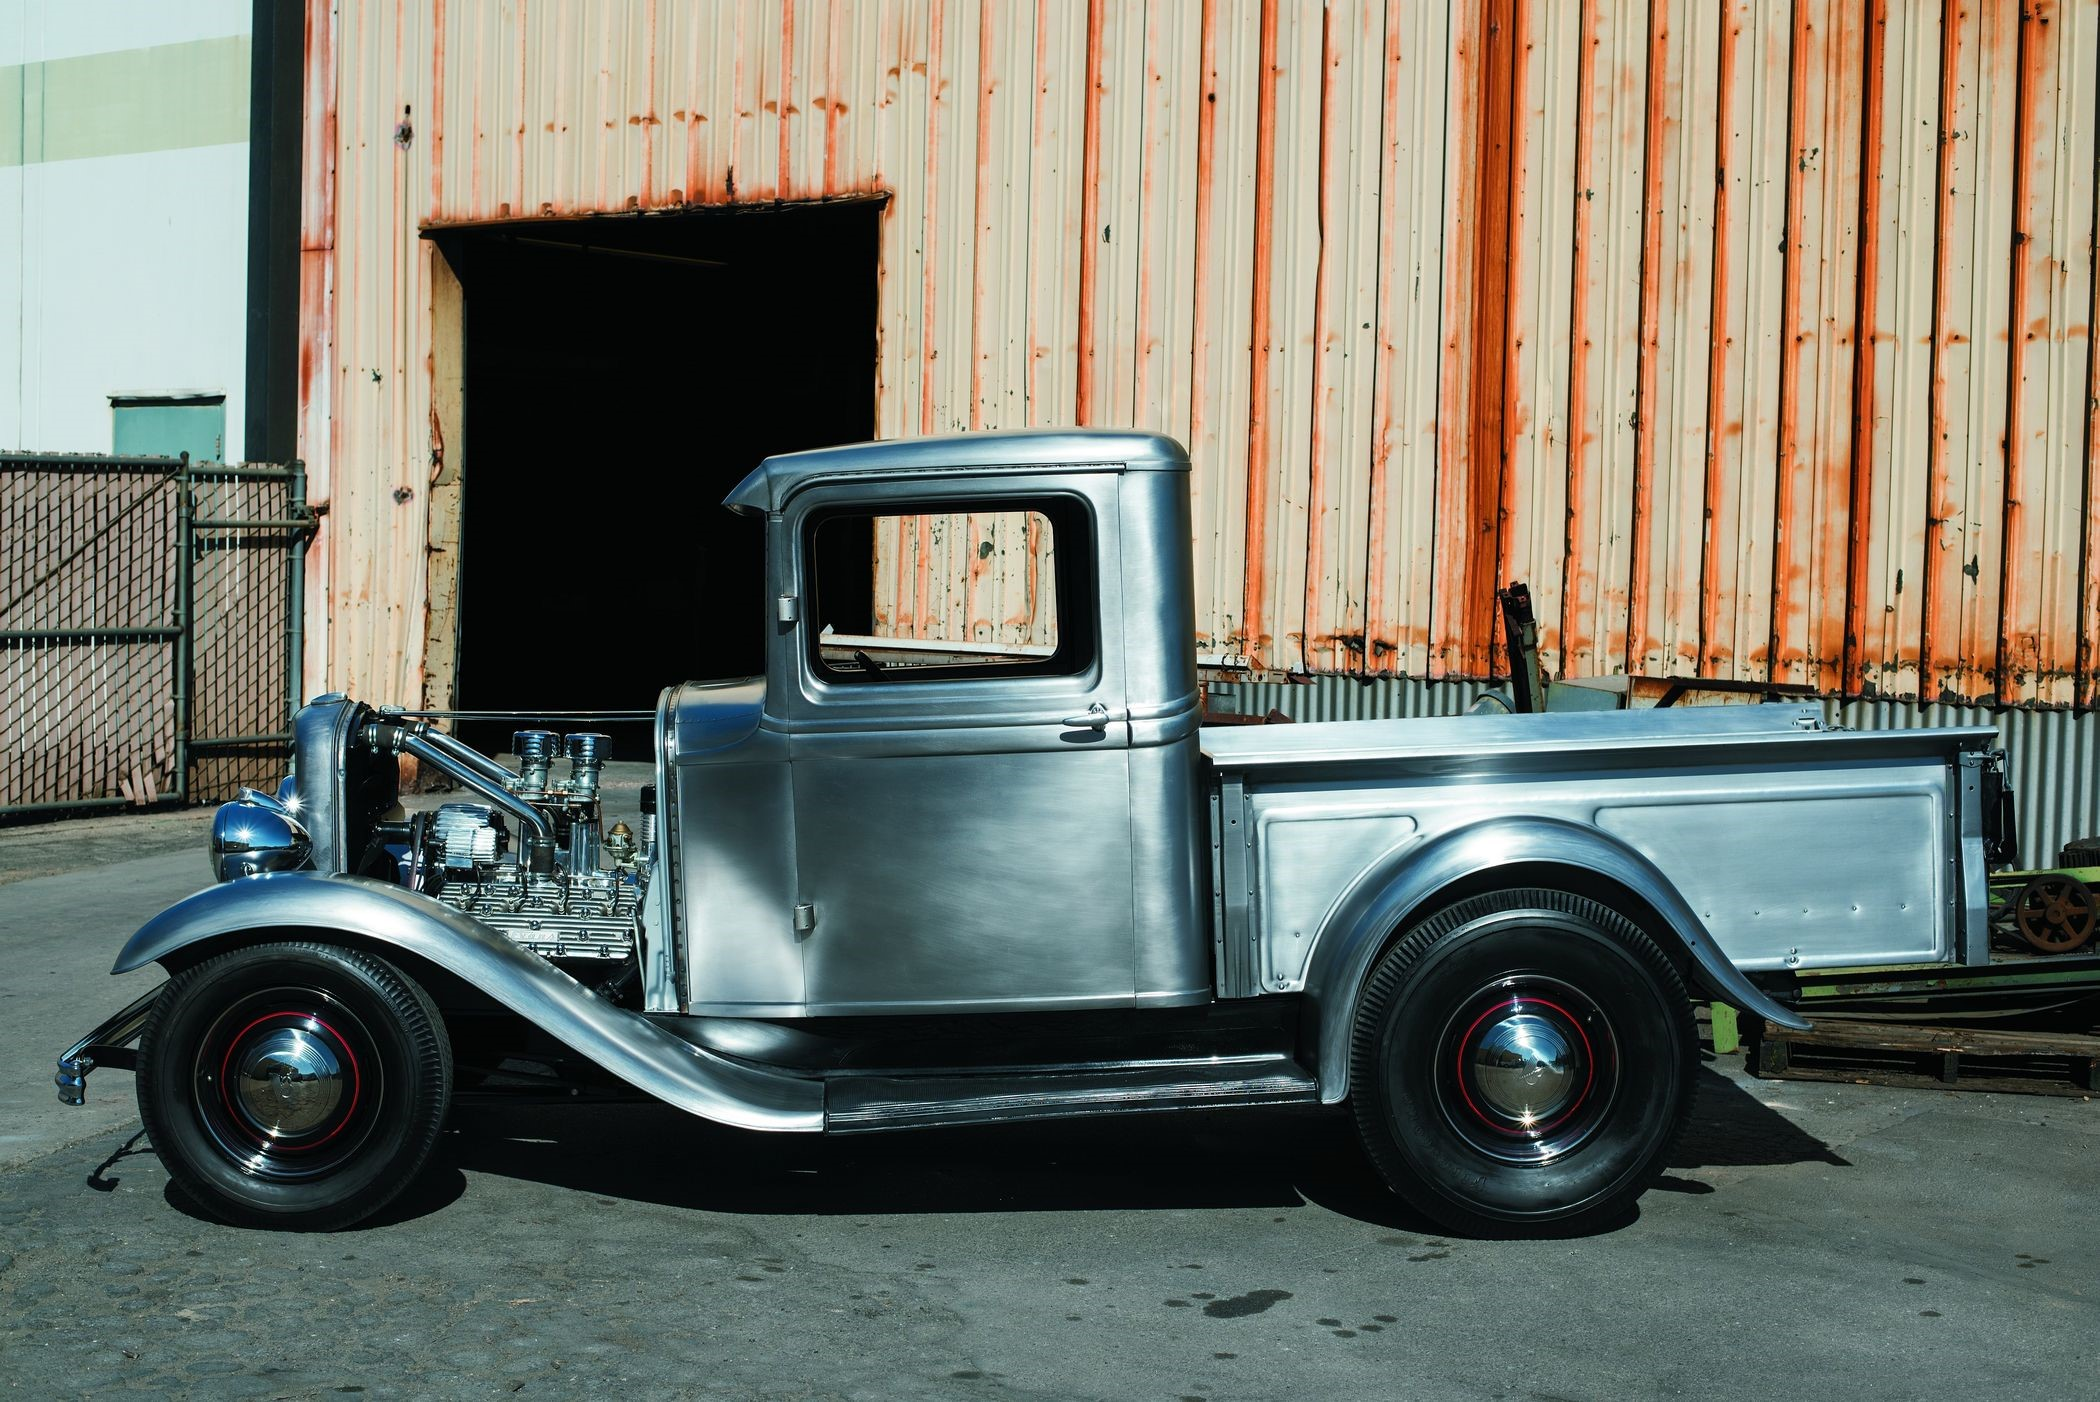 United Pacific unveils steel body for 1932-34 Ford trucks at SEMA